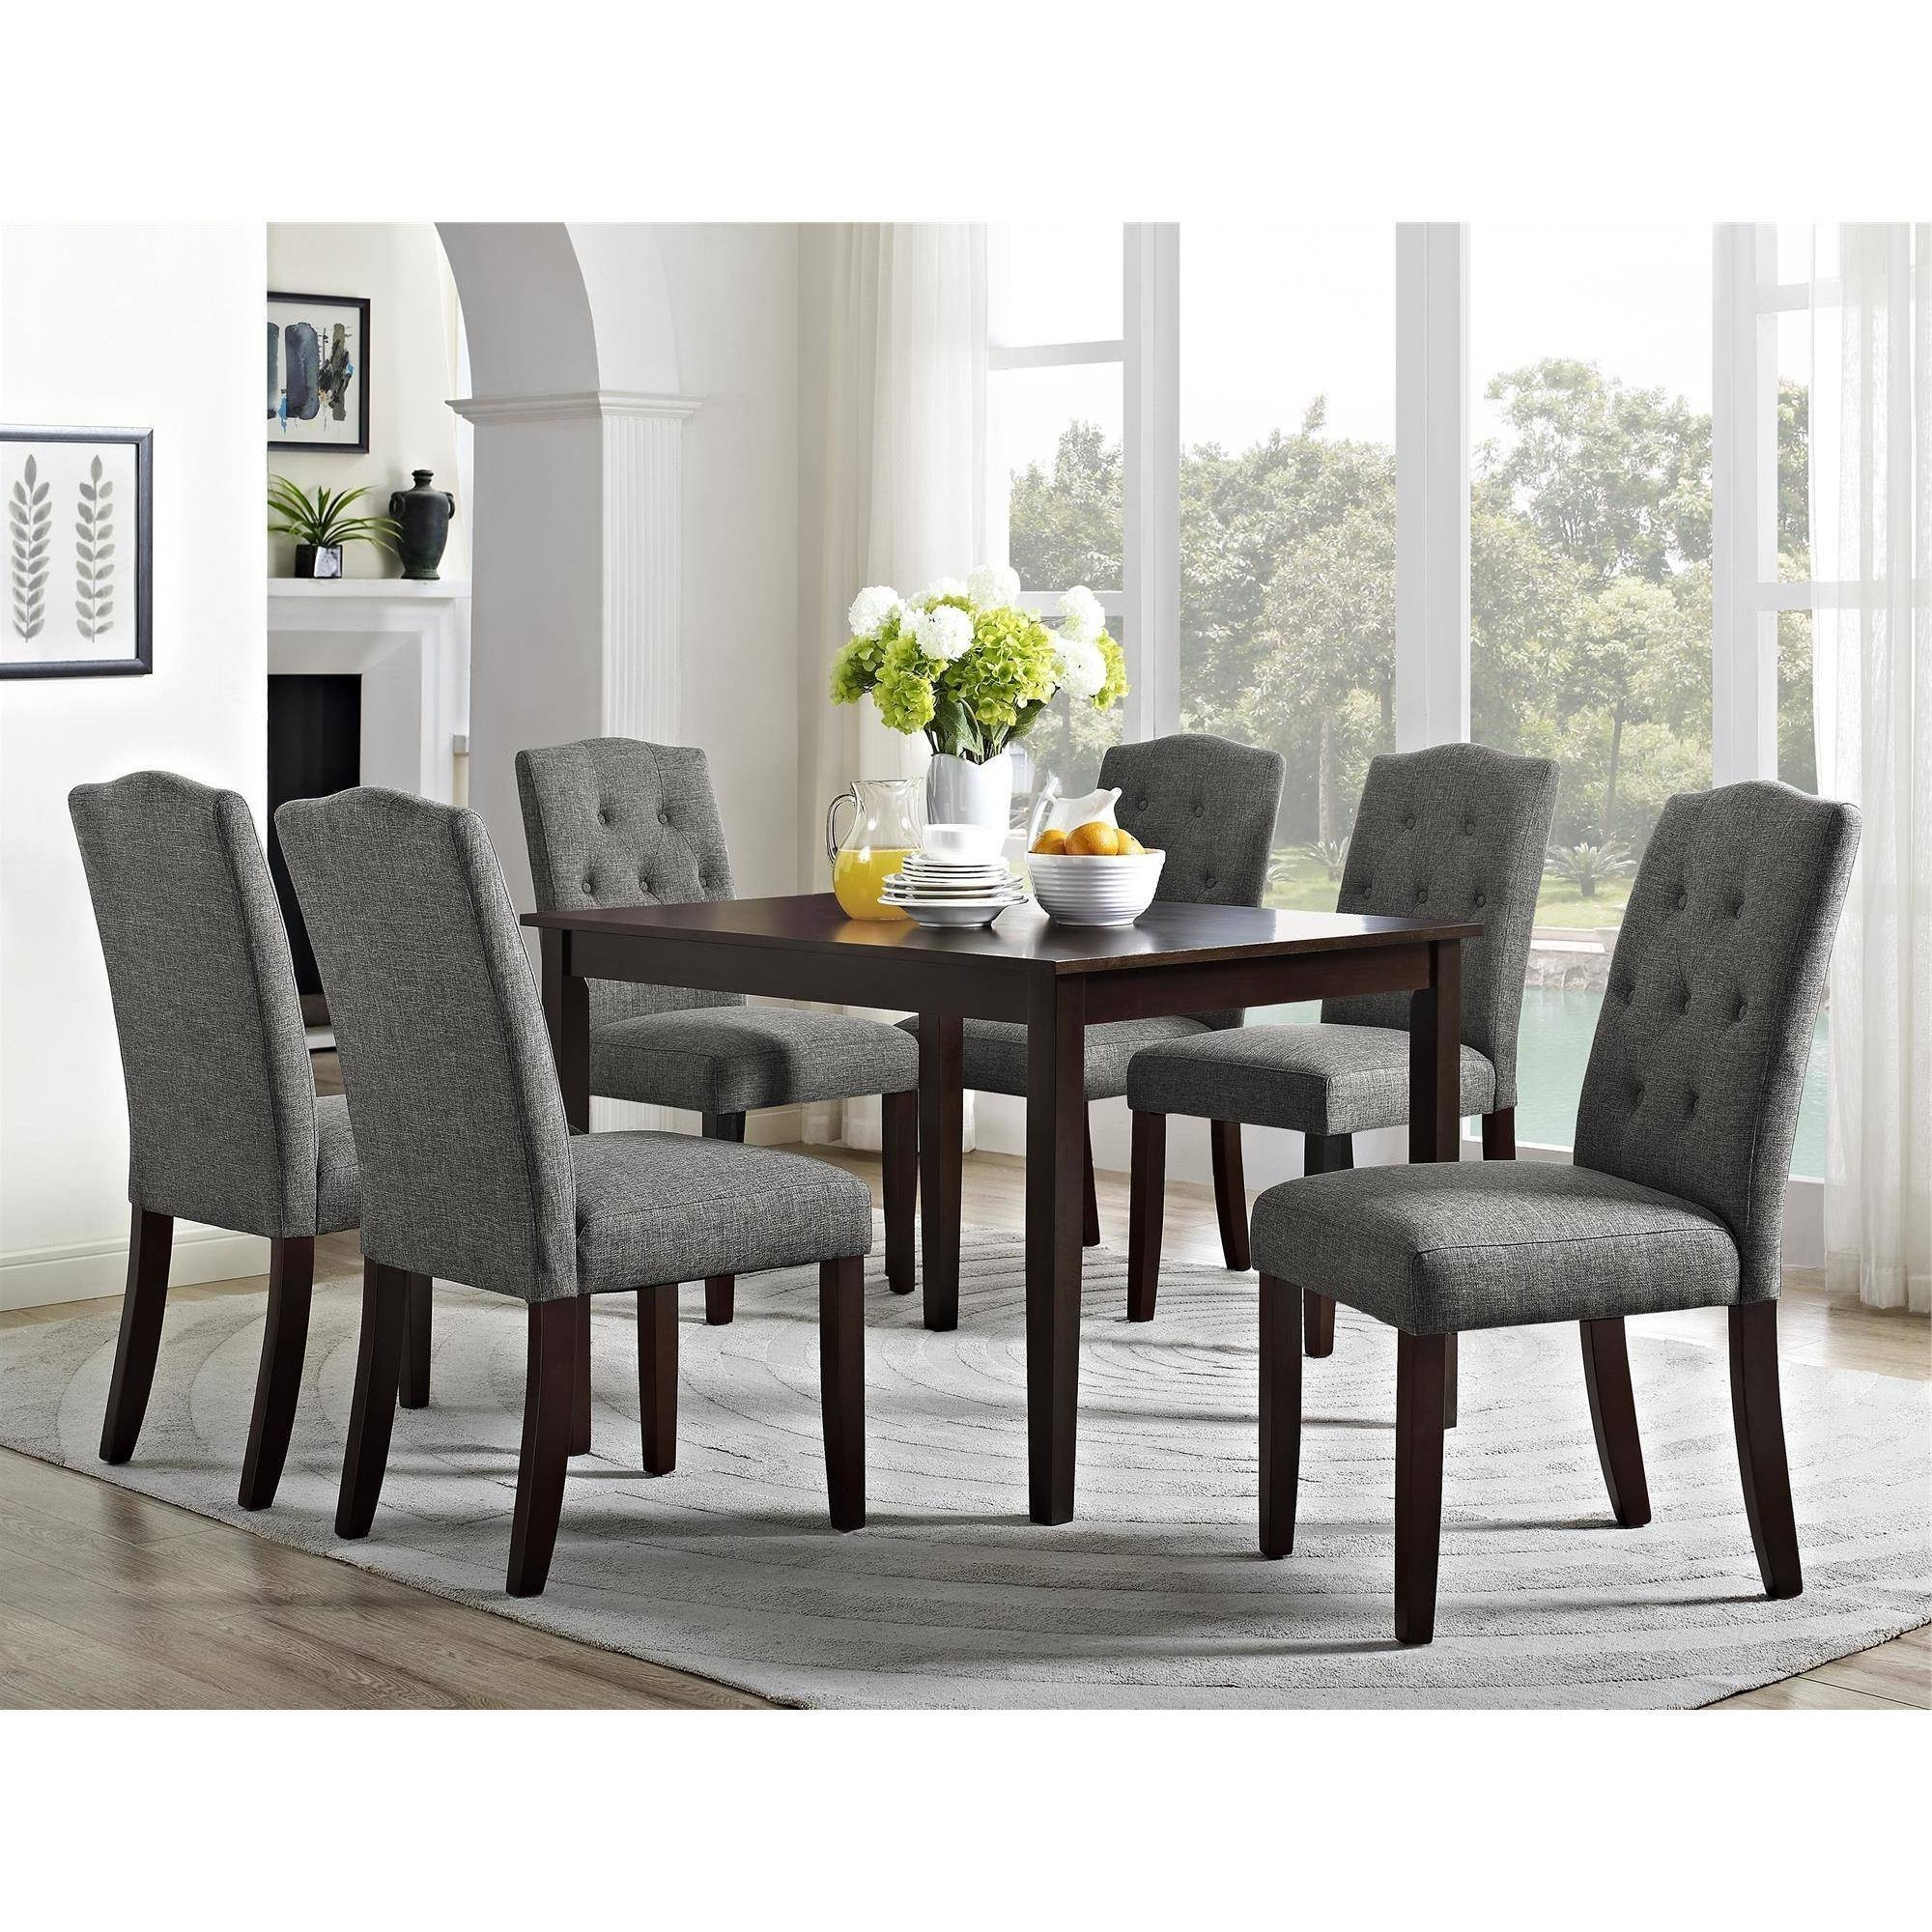 Trendy Better Homes And Gardens Parsons Tufted Dining Chair, Multiple Within Dining Tables With Grey Chairs (View 5 of 25)